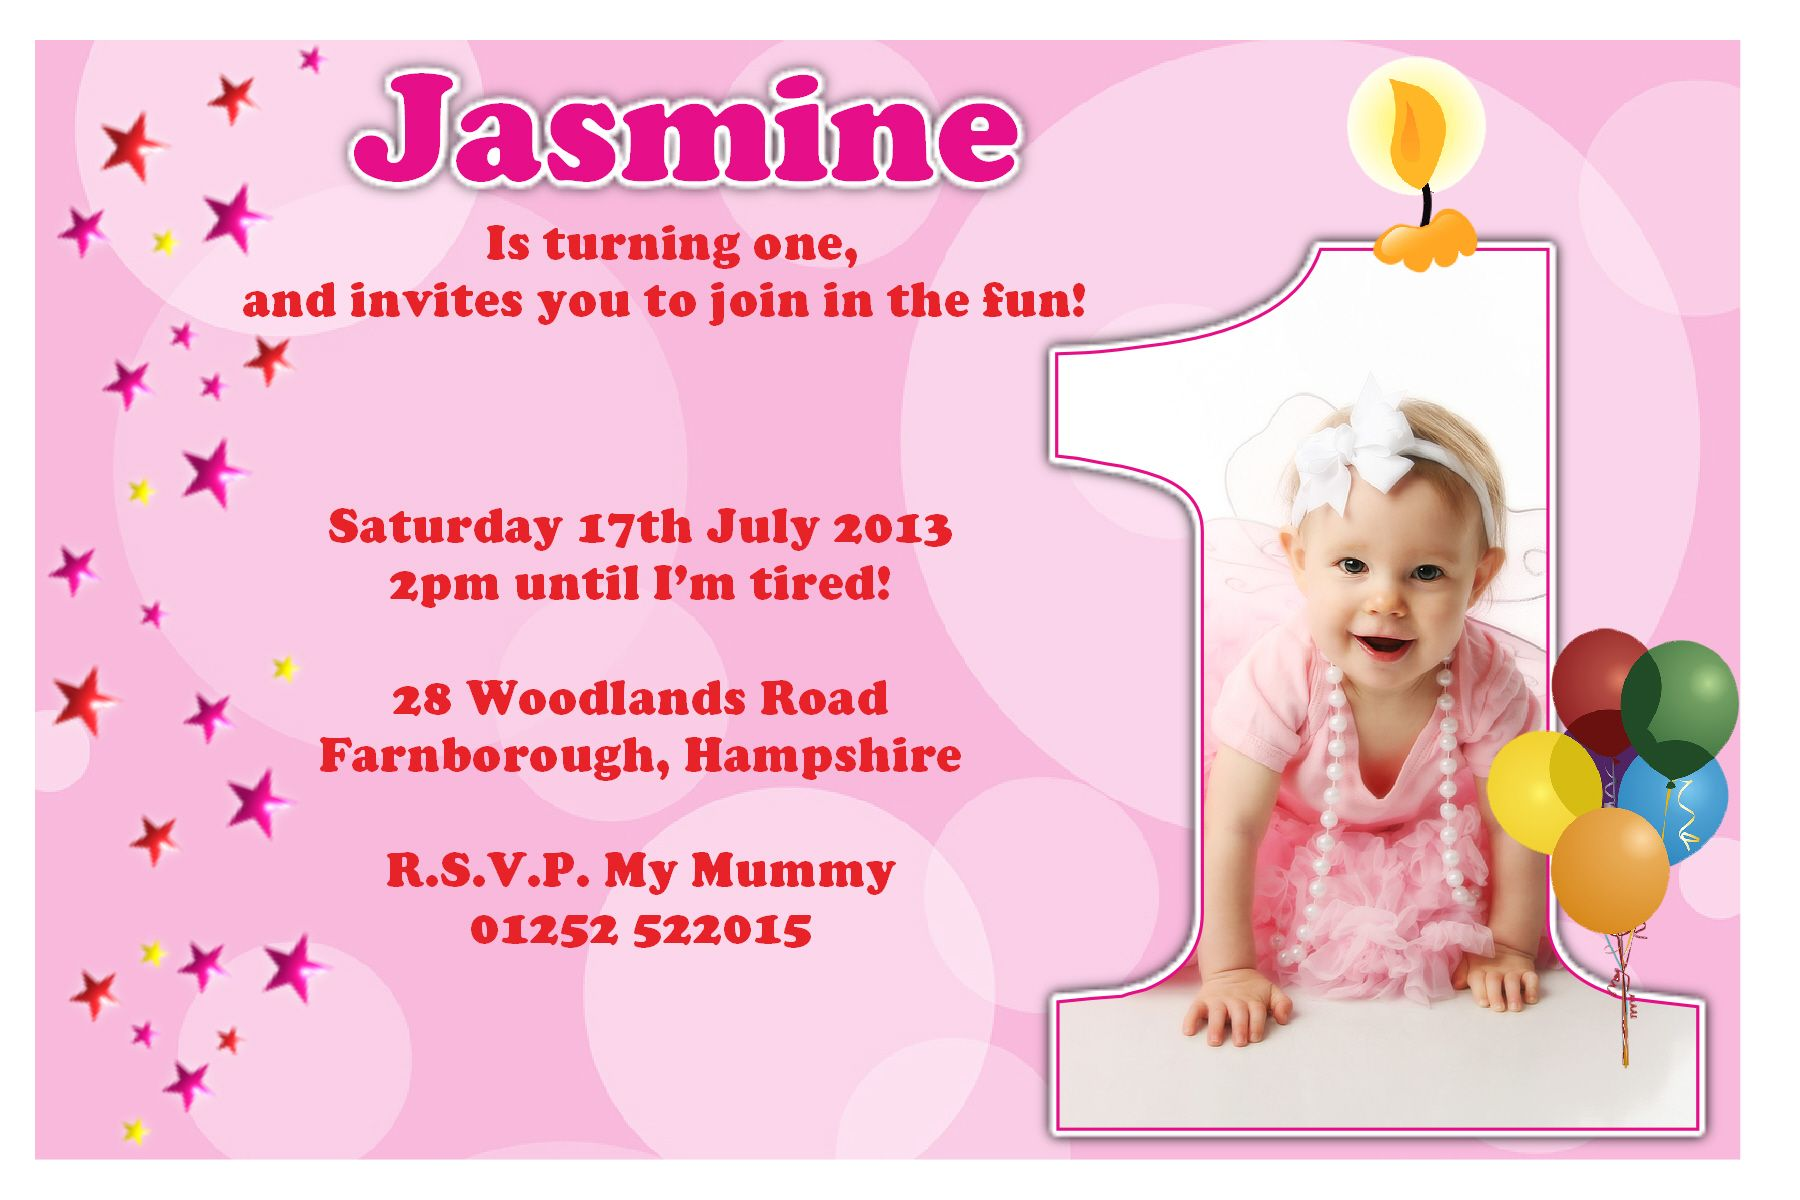 10 years birthday invitation cards ; invitation-card-for-first-birthday-party-For-design-Birthday-Invitations-examples-sensationell-very-amazing-2